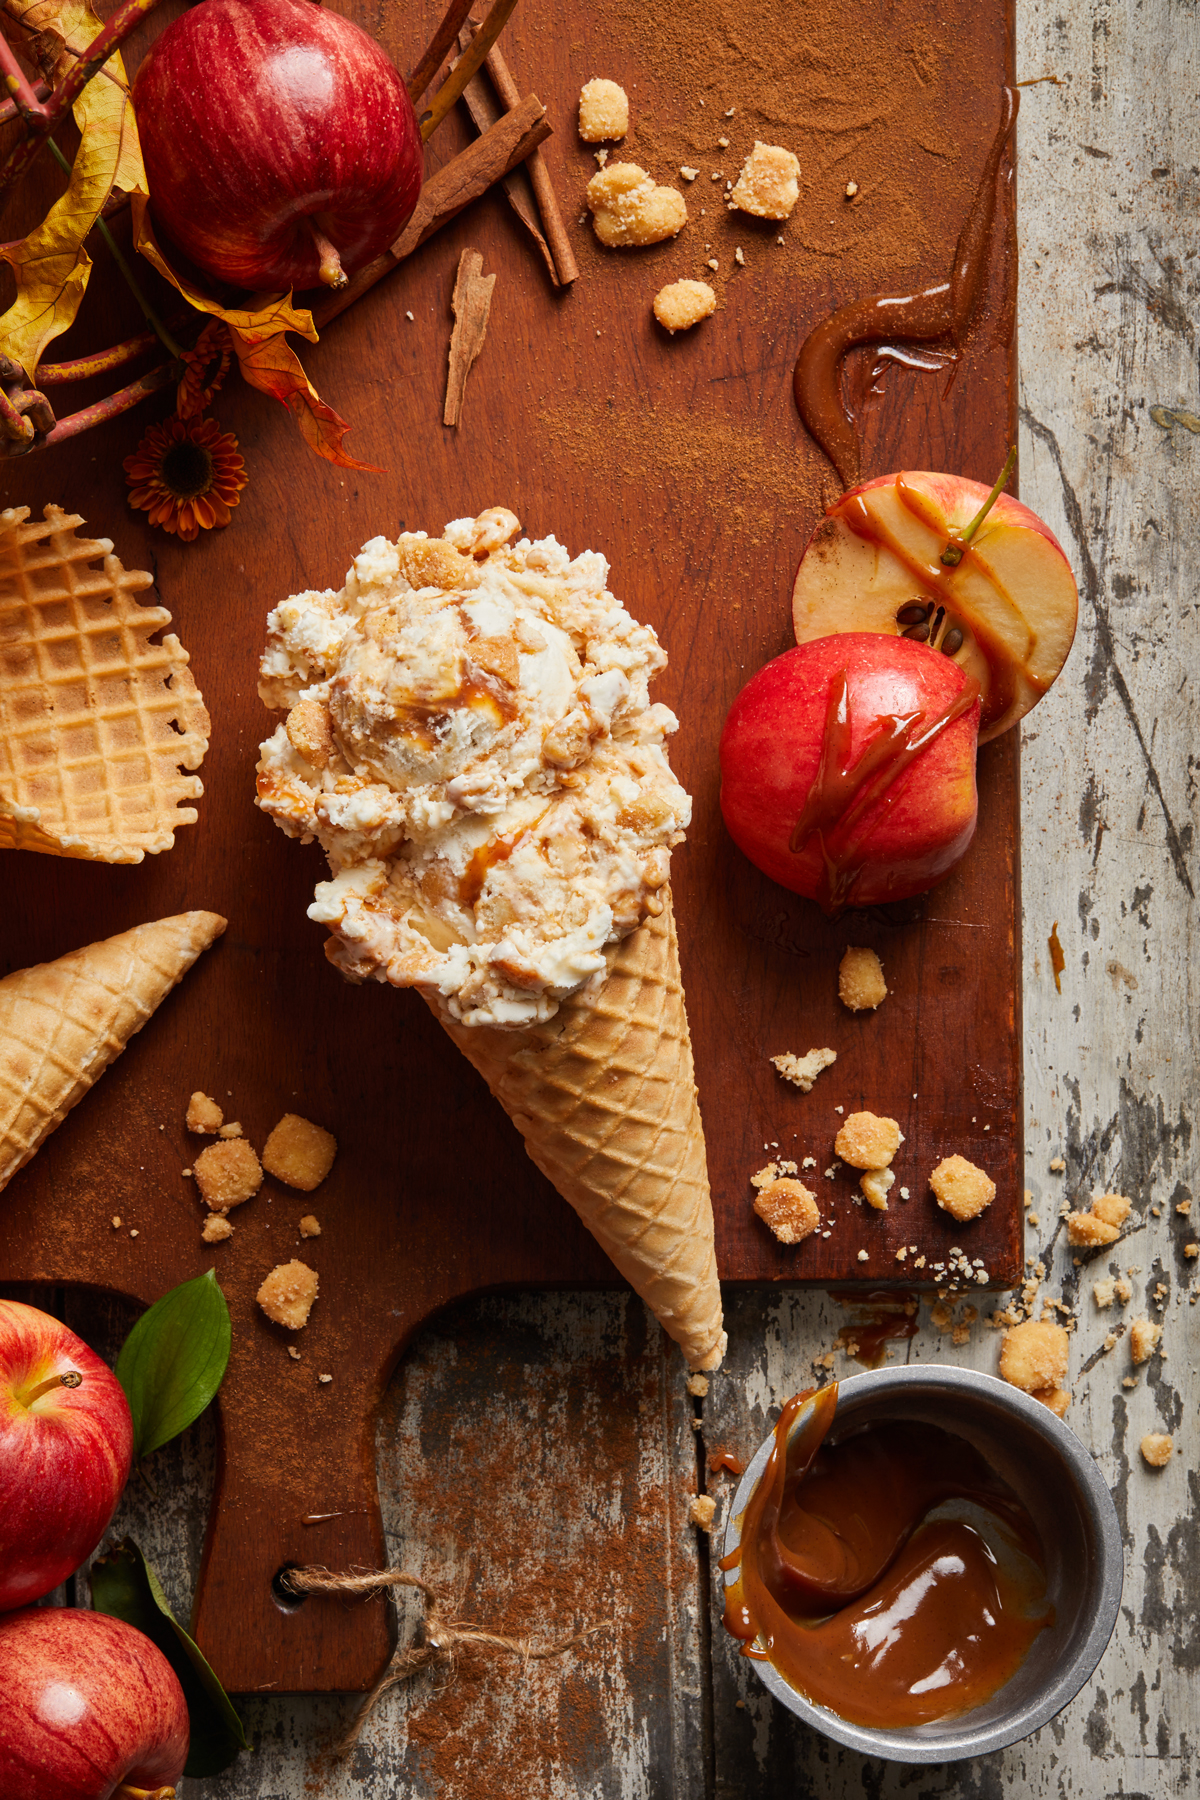 A scoop of ice cream on a waffle cone with apples, cones, and caramel surrounding it.